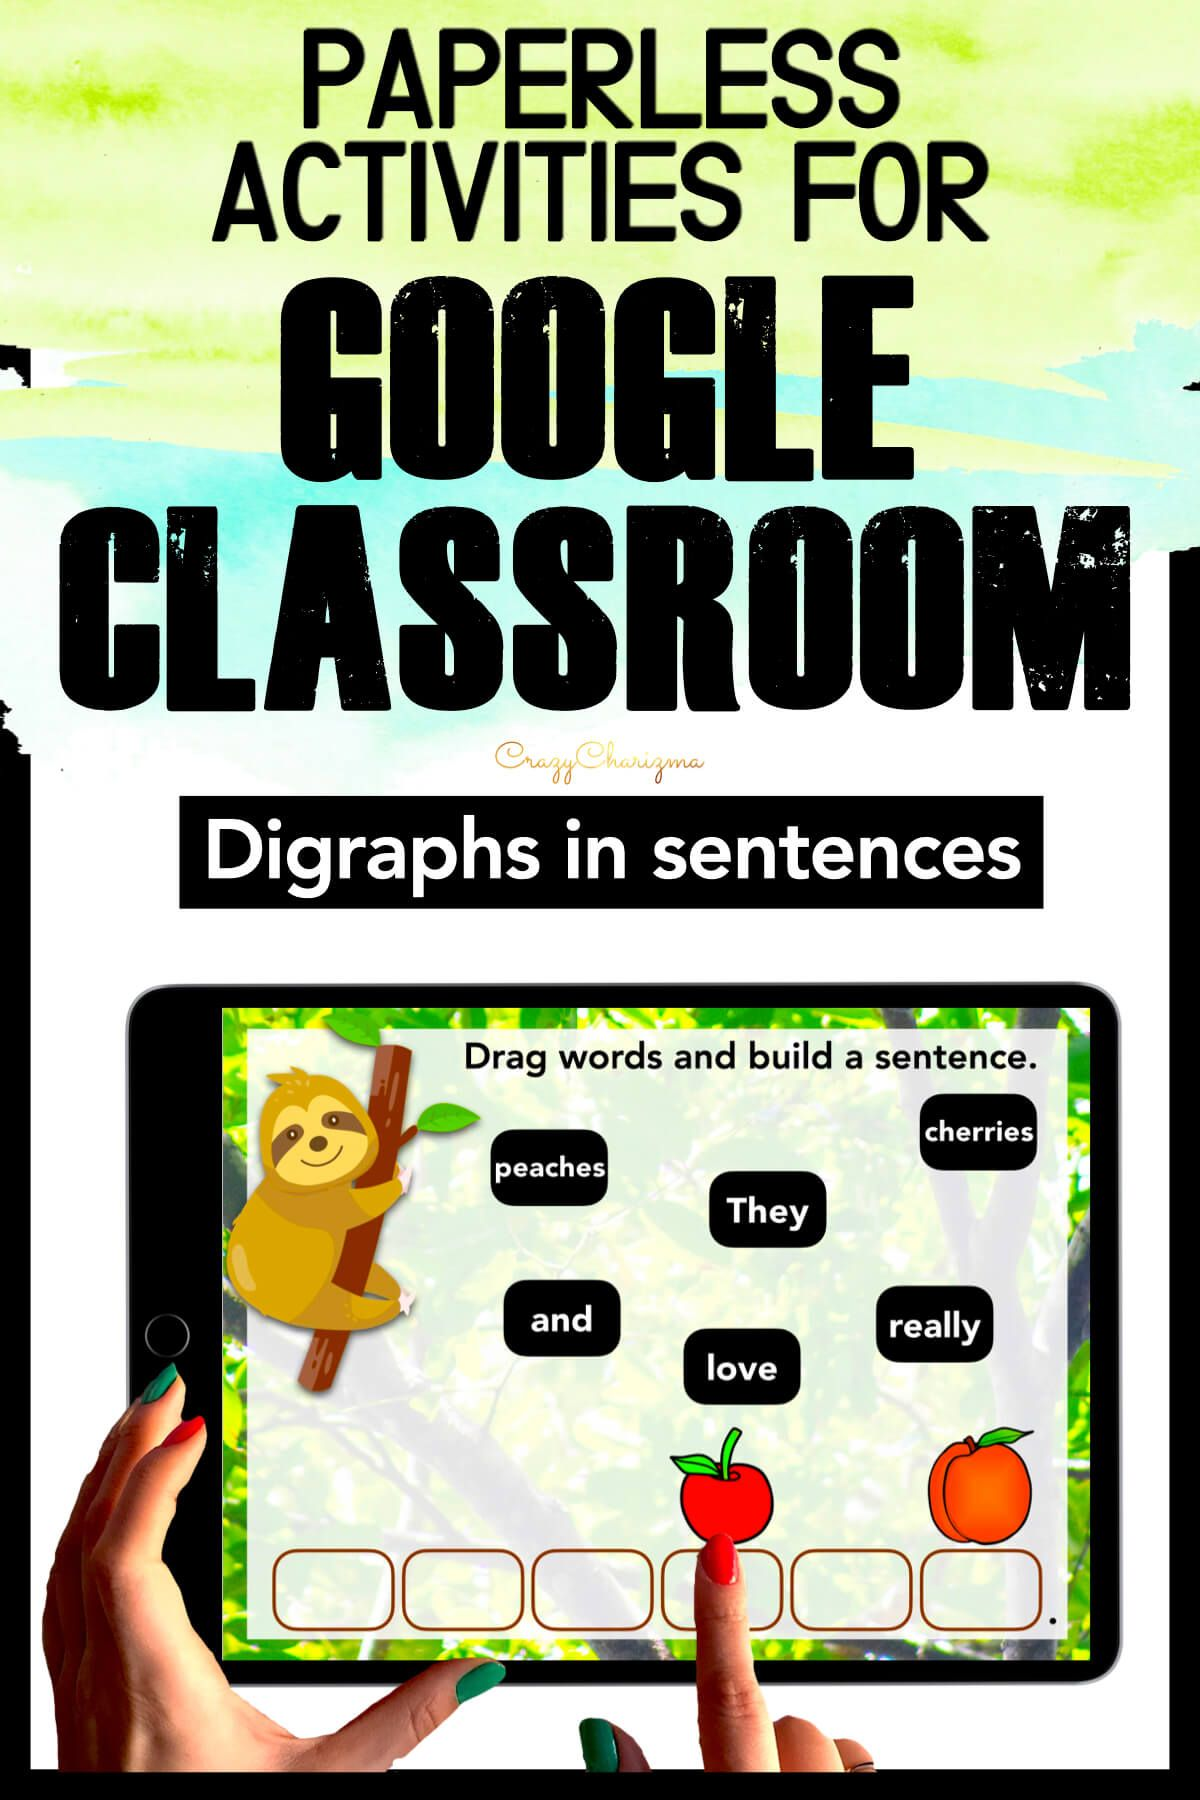 Need to practice DIGRAPHS in sentences? Check out these interactive slides for Google Classroom. Kids will drag words and build sentences in the tropics!